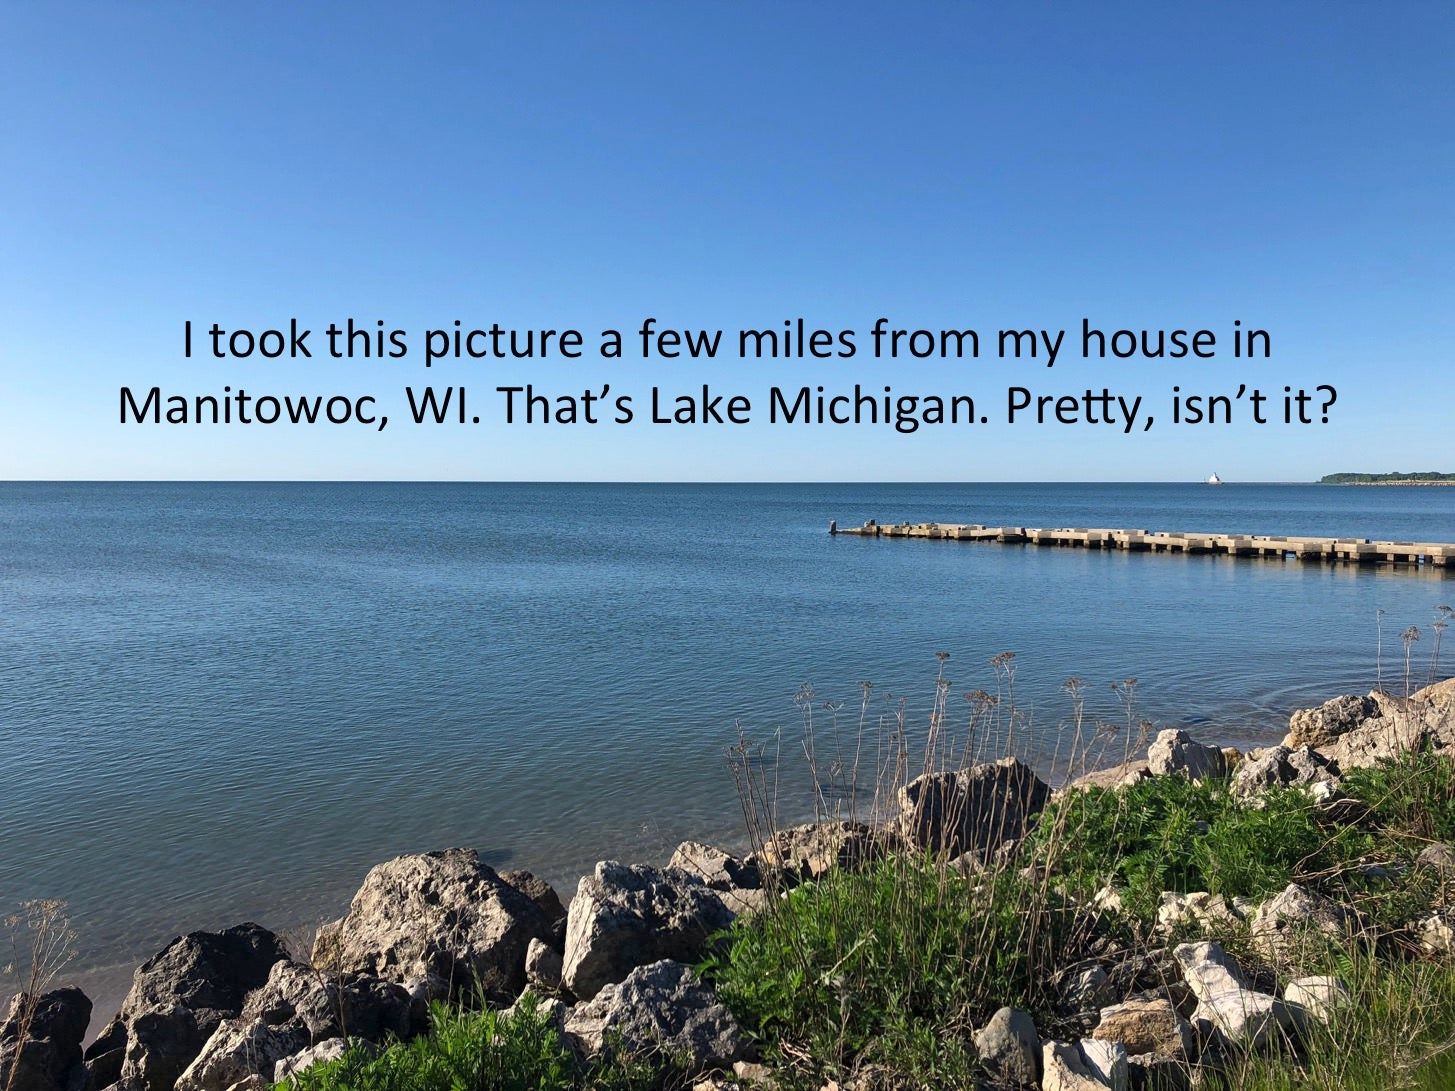 This guy used a picture of Lake Michigan and science to